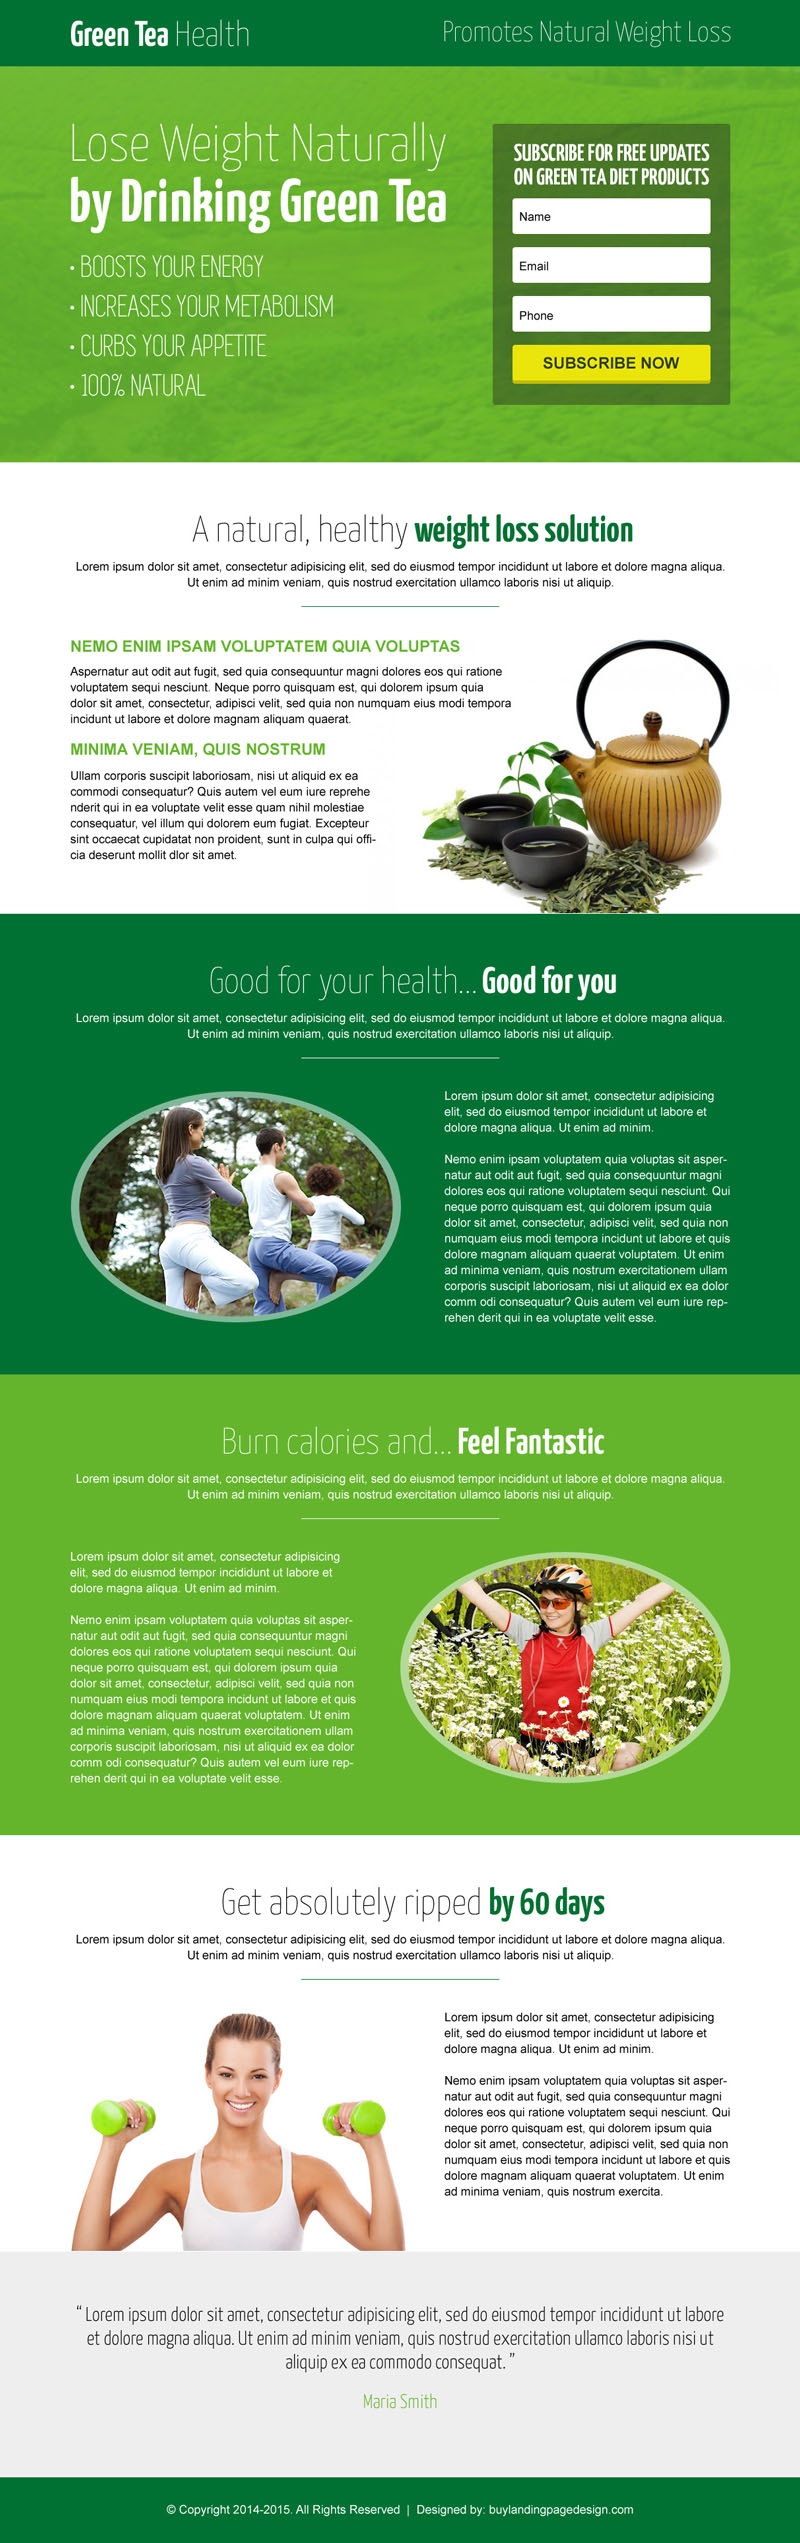 green-tea-natural-weight-loss-lead-capture-responsive-landing-page-design-templates-012